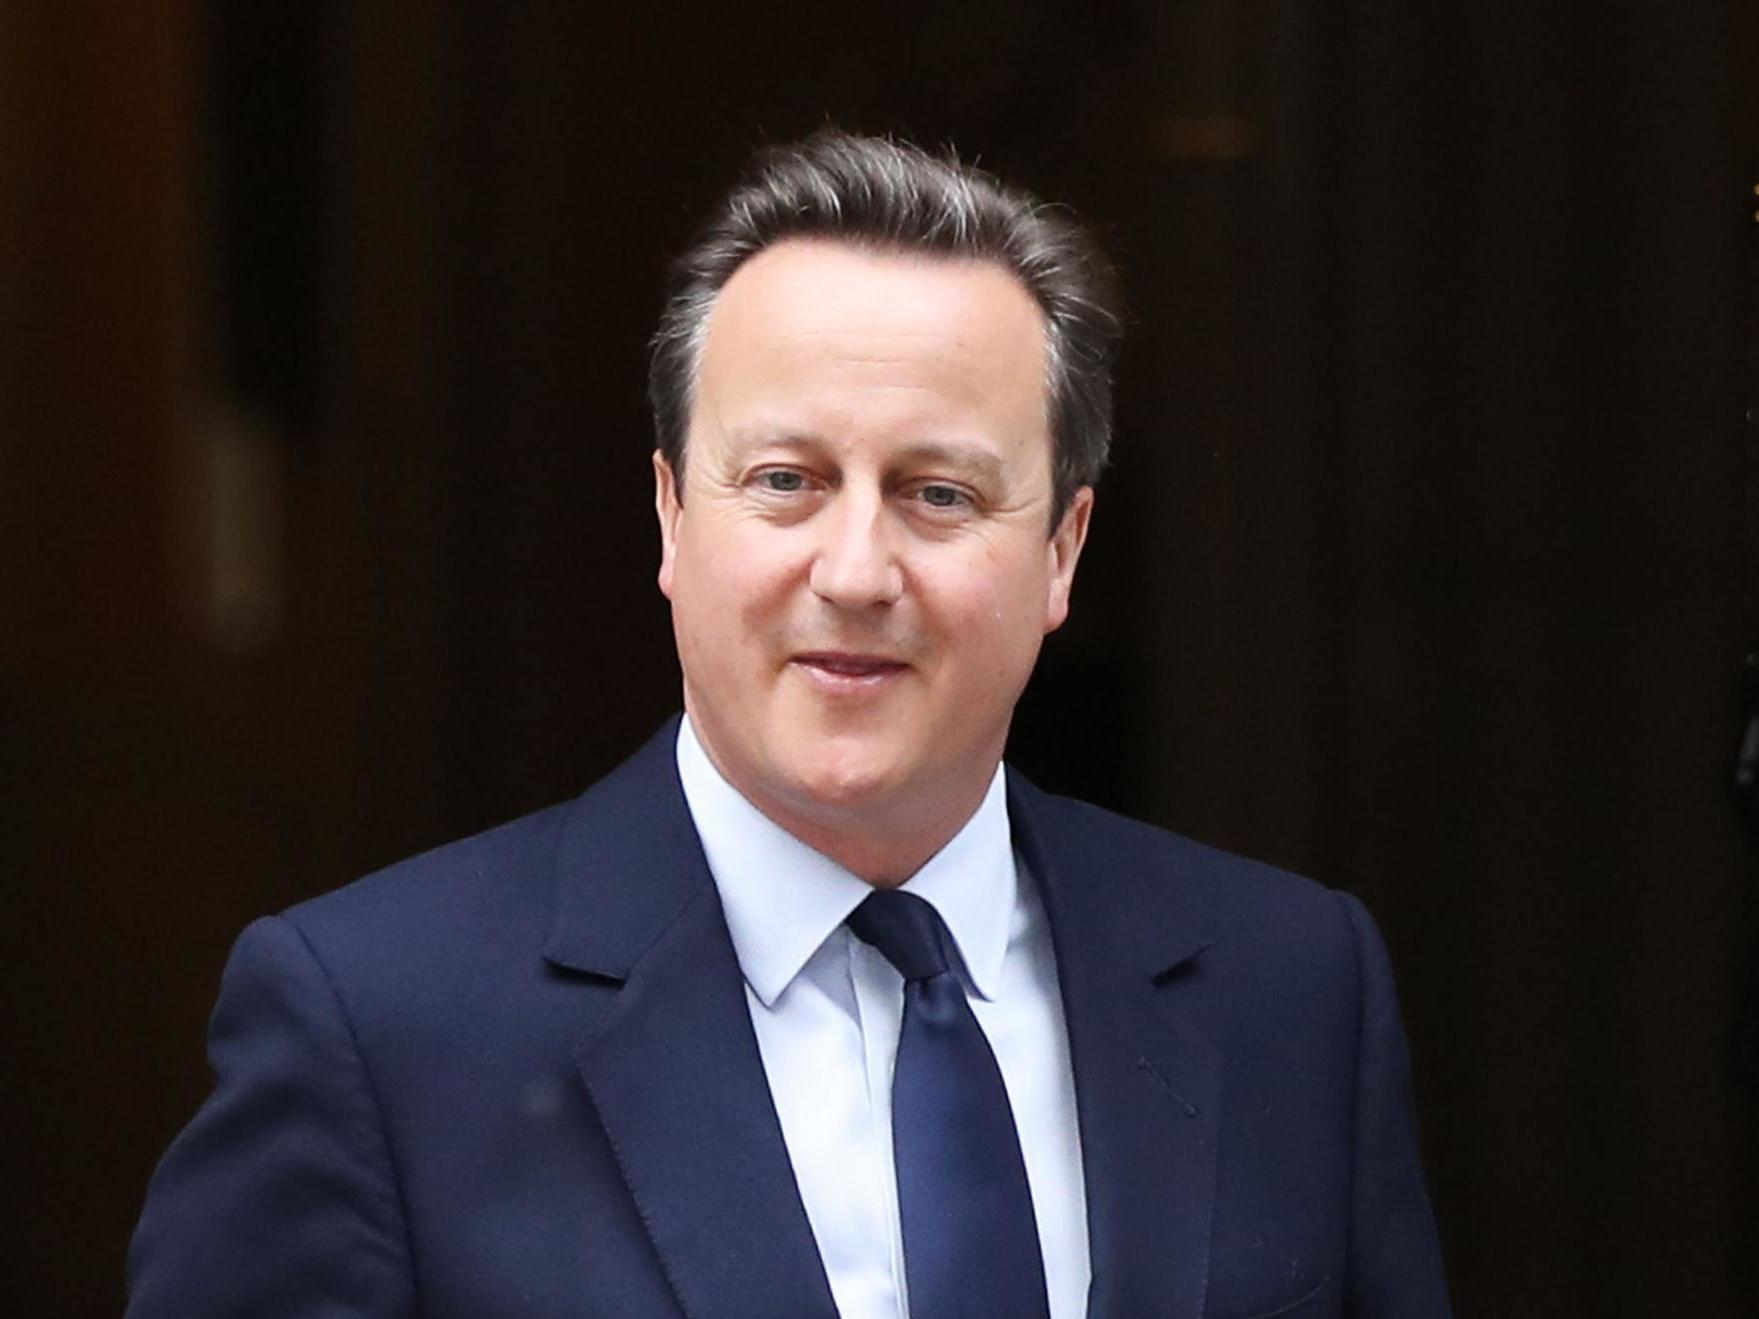 COP26: David Cameron 'turned down Boris Johnson offer to head UN climate summit'